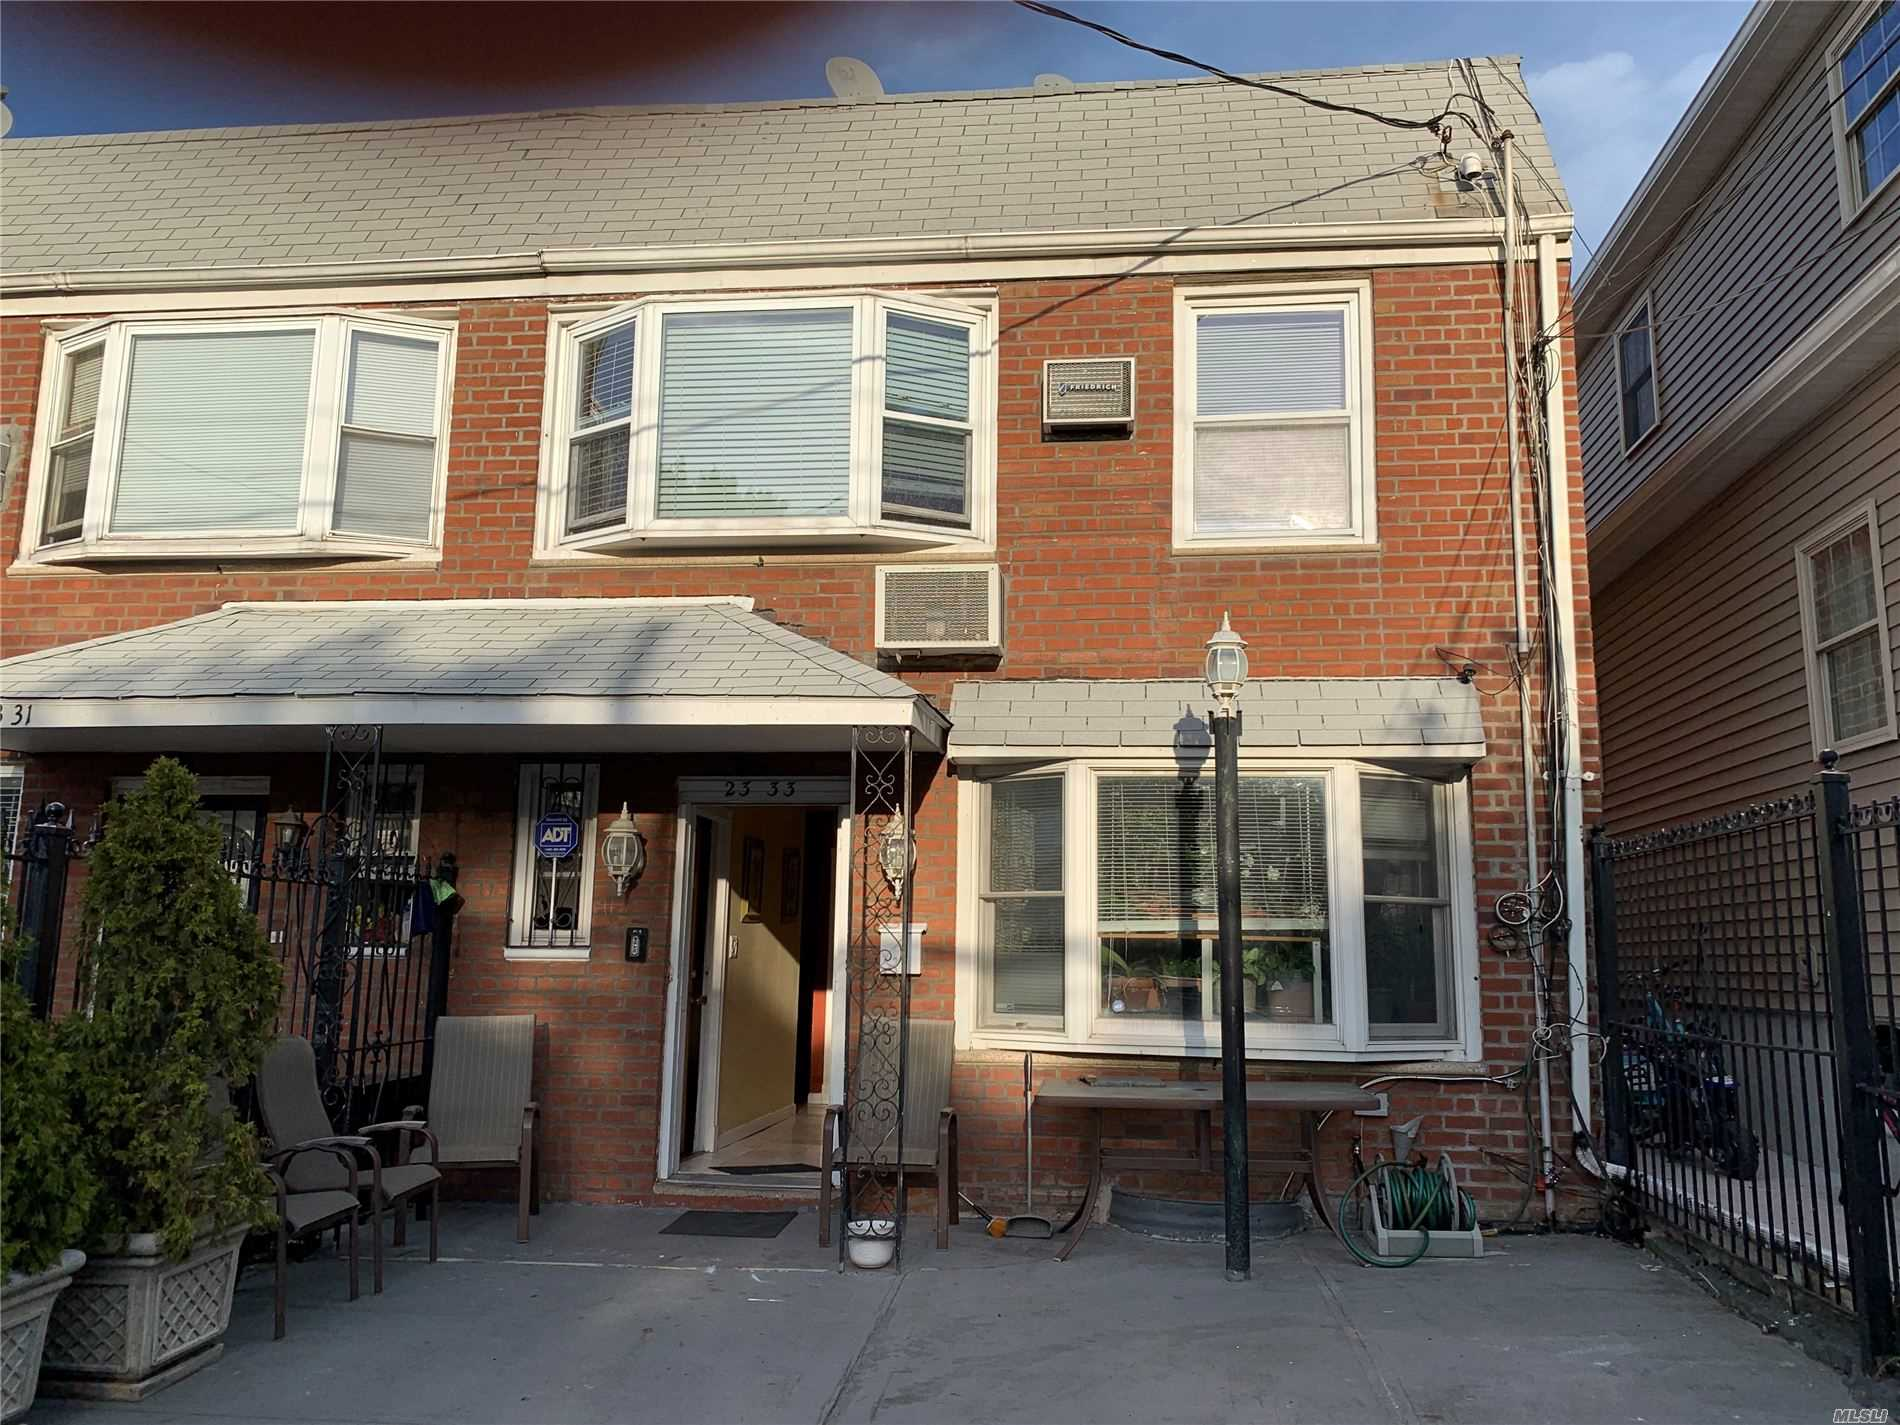 AMAZING BRICK 2 FAMILY HOME/CLOSE TO ALL/2 MINUTES FROM LA GUARDIA AIRPORT/ PRIVATE ACCESS TO ALL LEVELS FROM THE FRONT DOOR AND ALL LEVELS HAVE ACCESS TO BACK YARD PROPERTY RENOVATED AND IN VERY GOOD CONDITIONS